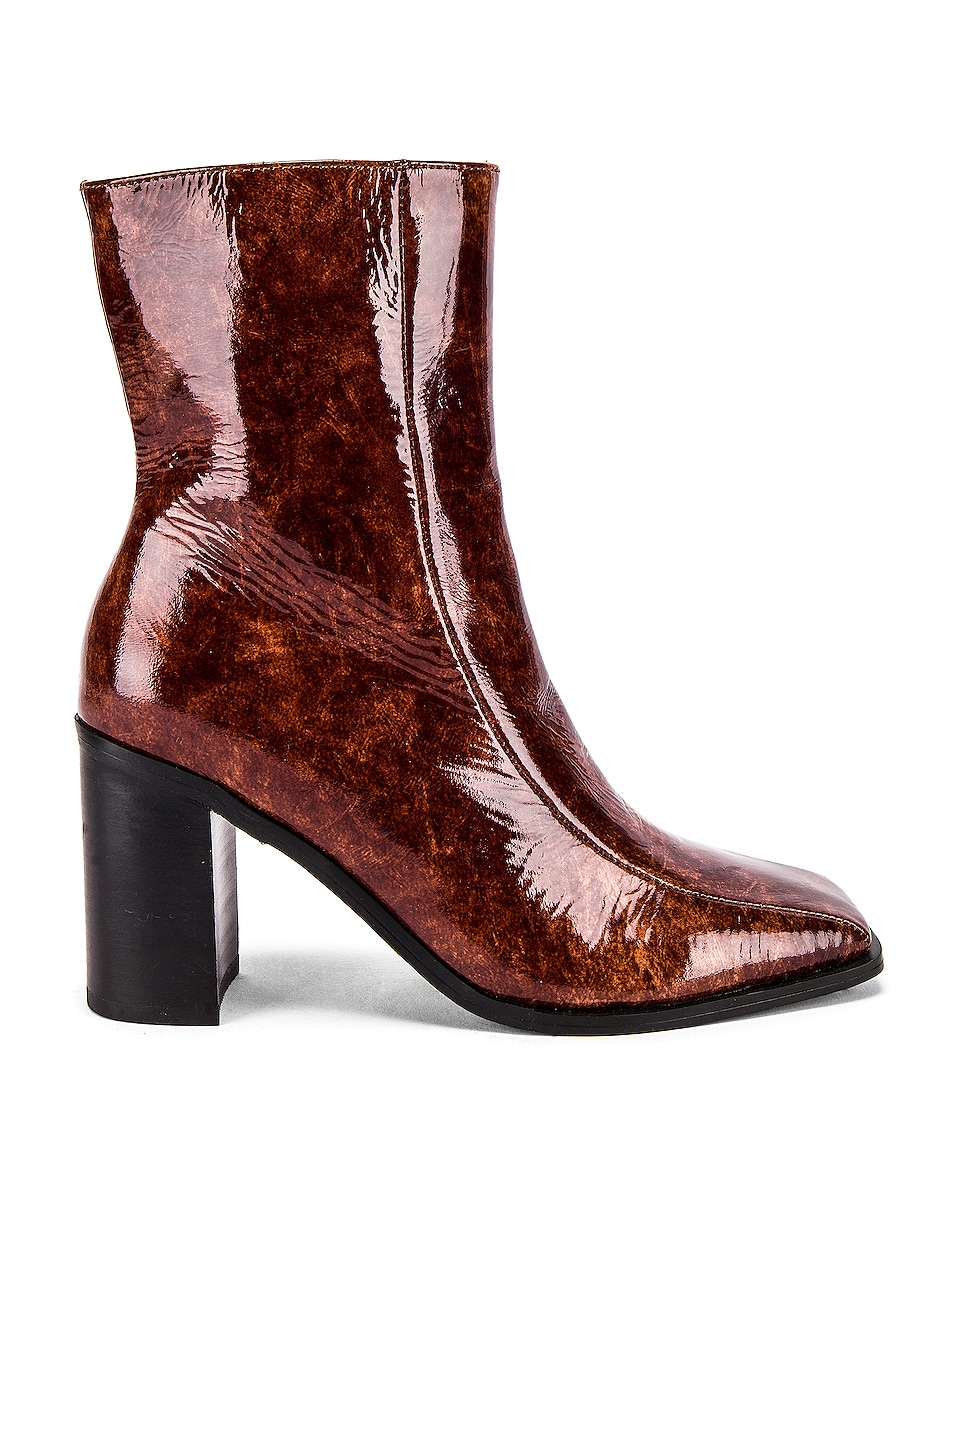 JAGGAR Bold Ankle Bootie in Chocolate